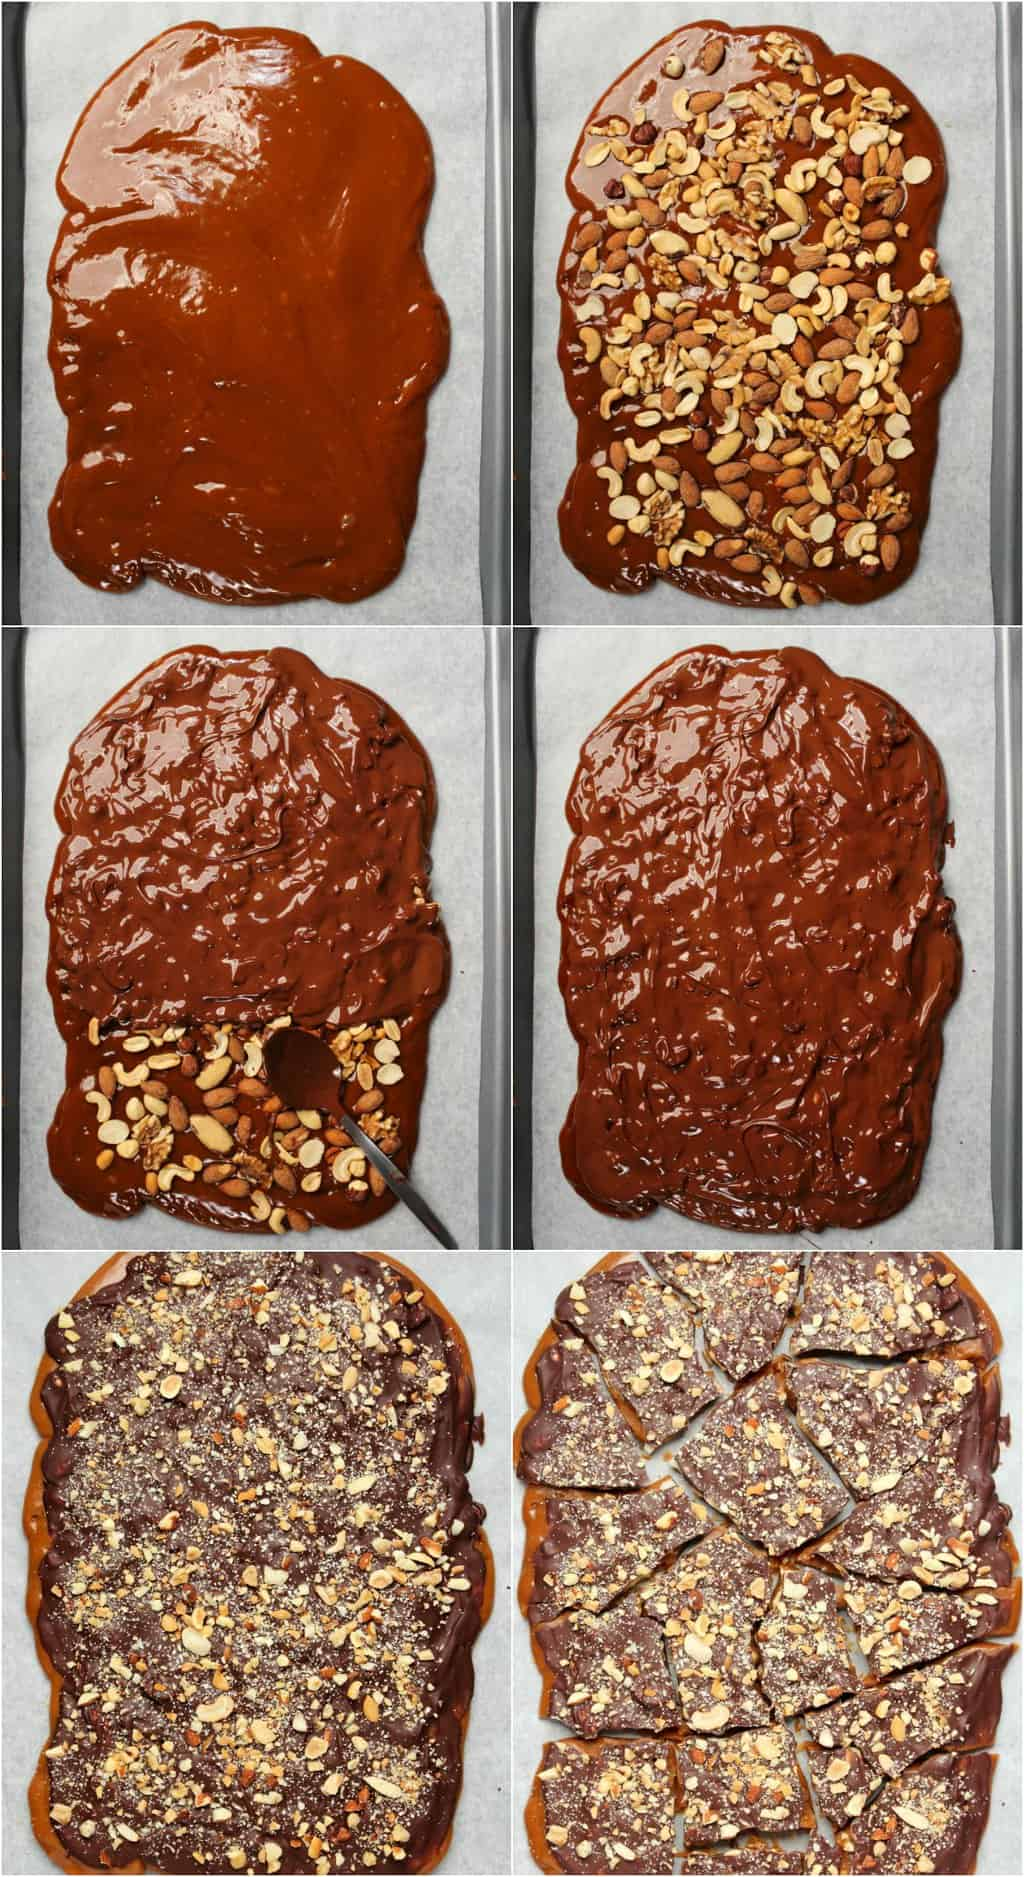 Step by step process photo collage of making vegan toffee.